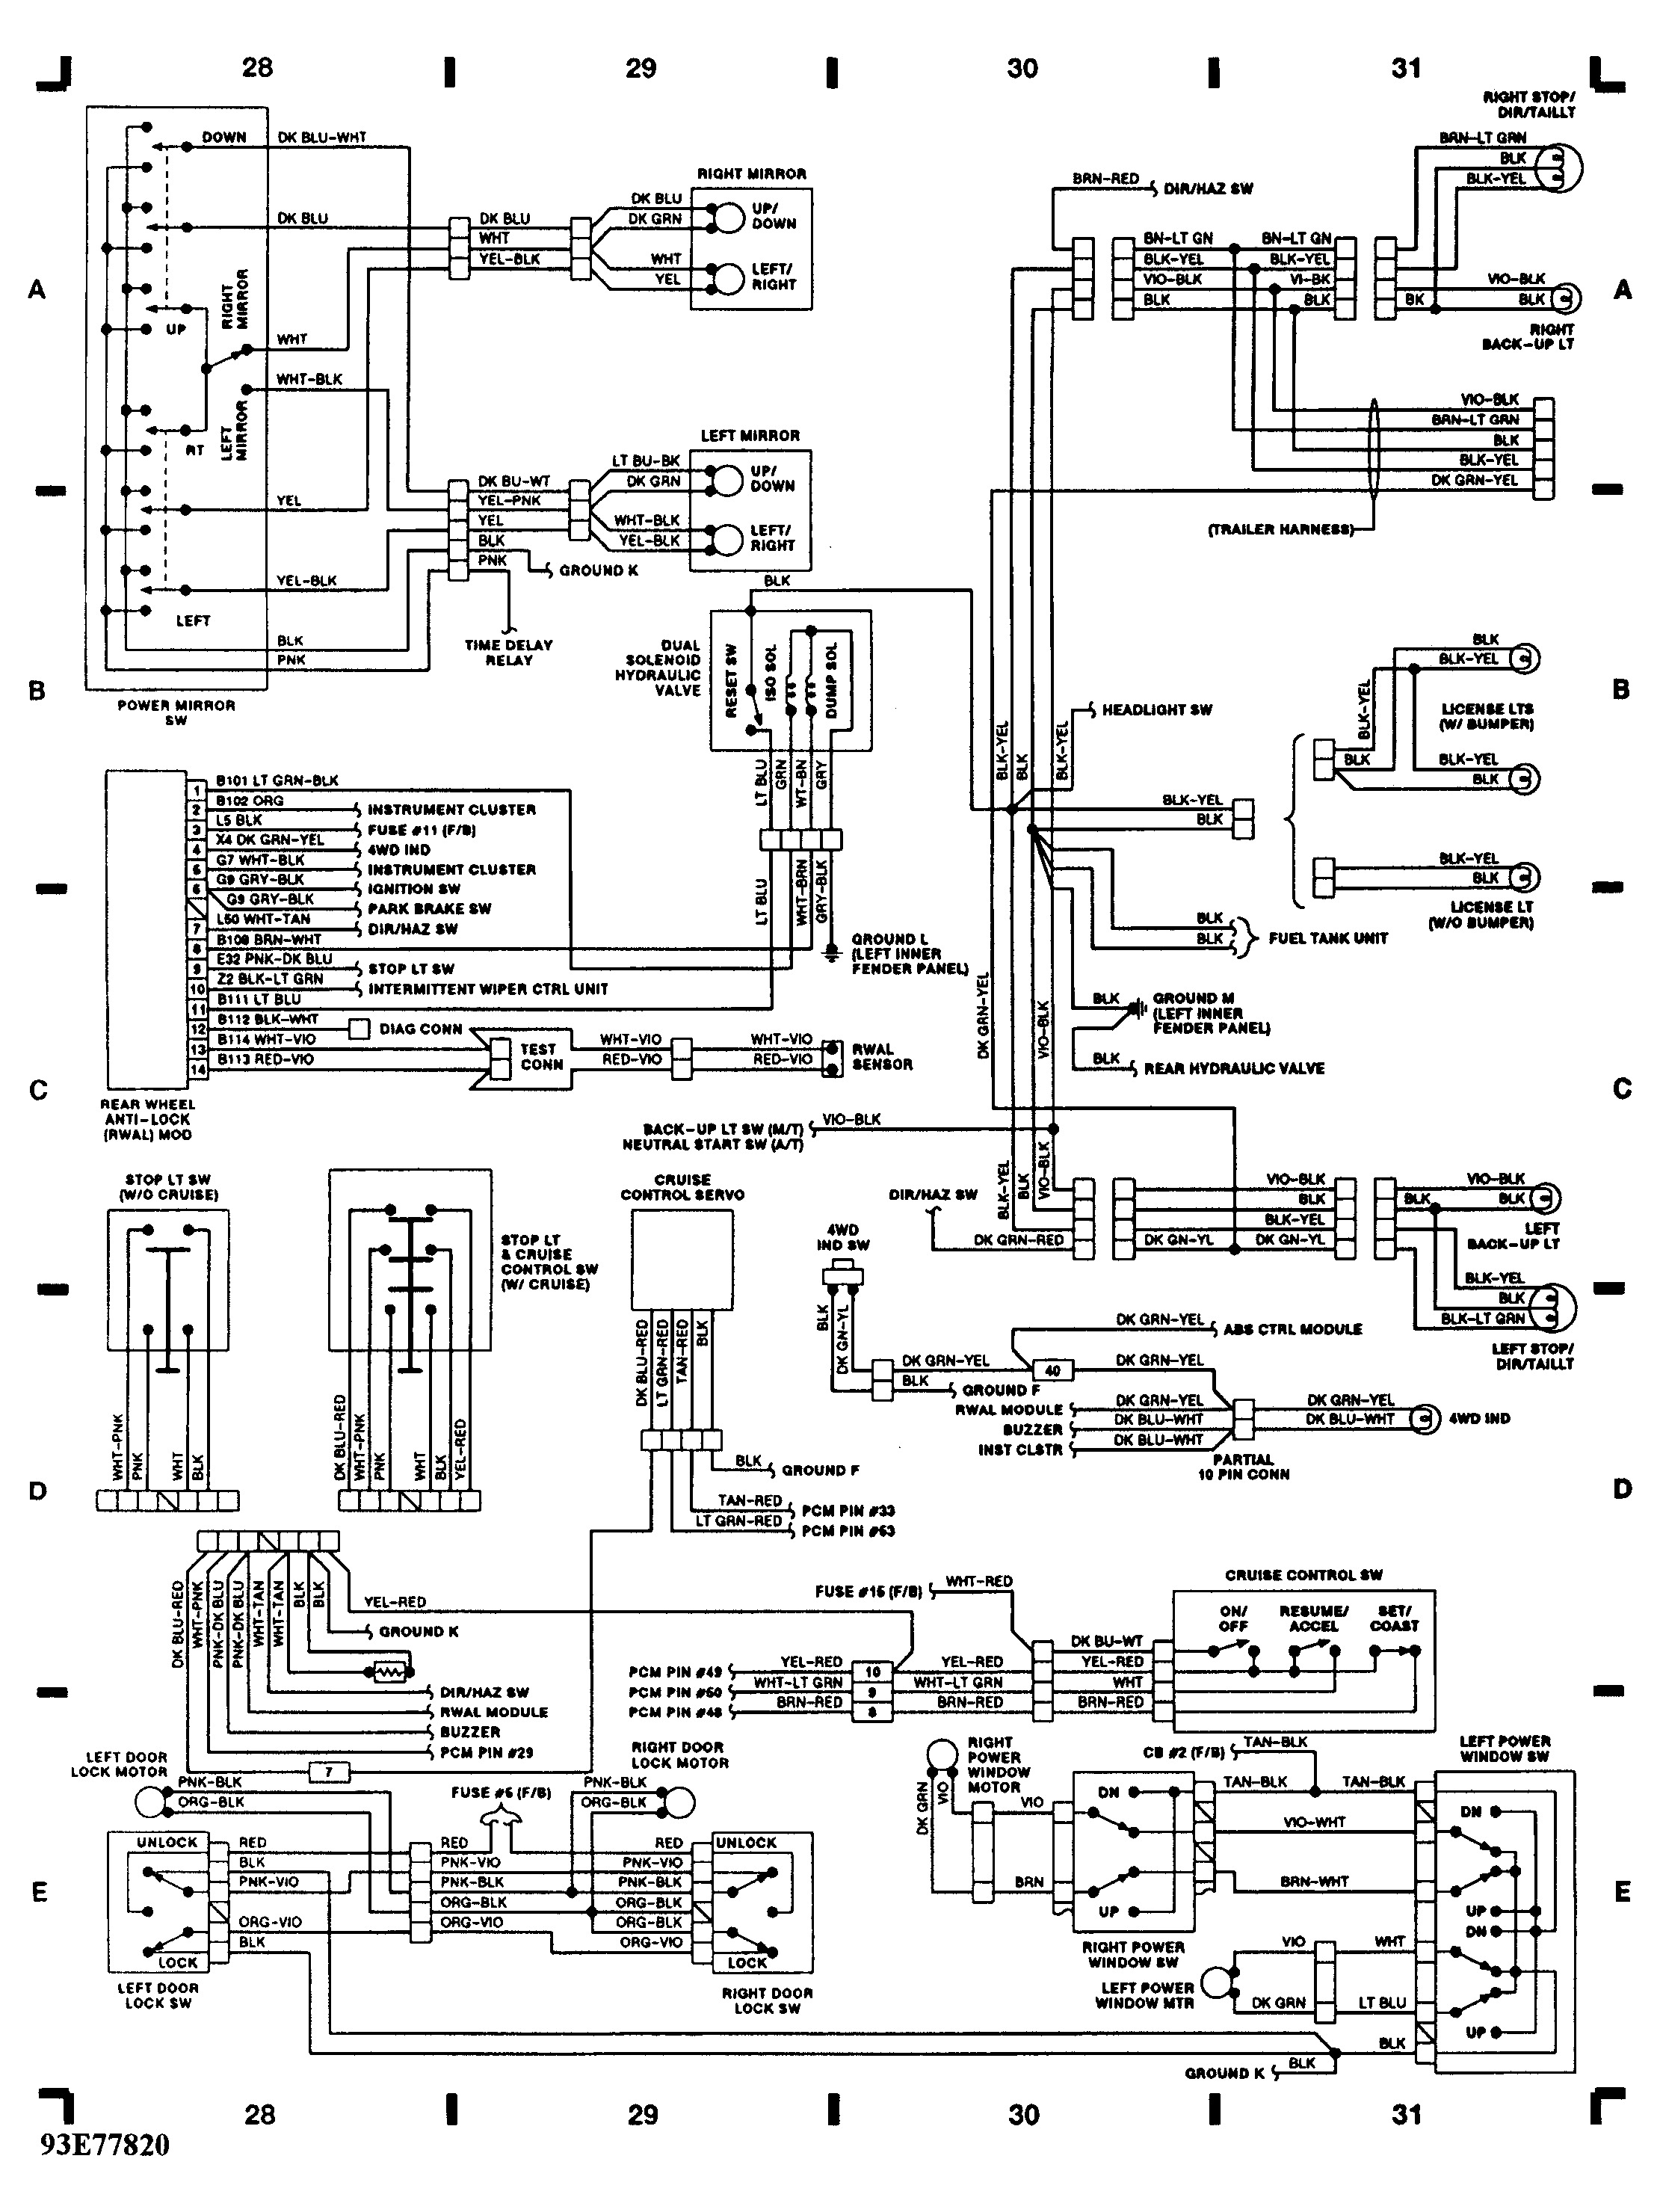 Wiring Schematic For Ford Lcf